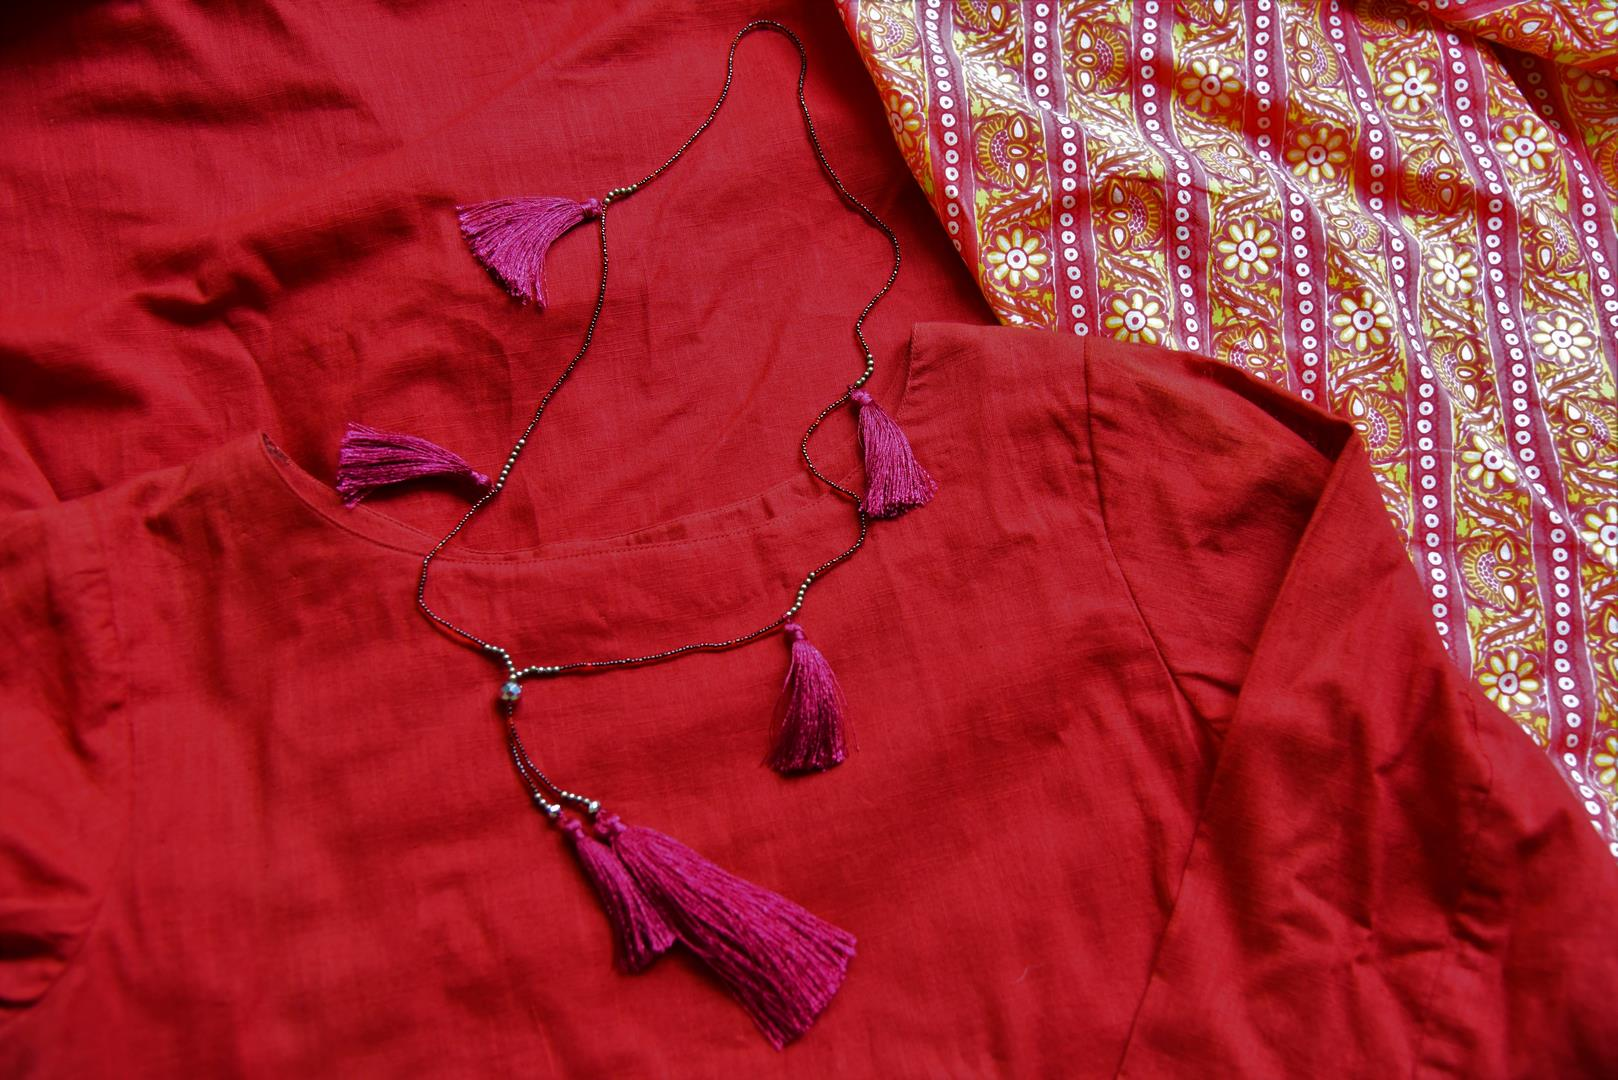 Buy maroon linen kurta online in USA with printed cotton salwar from Pure Elegance Indian fashion store in USA. Make a stylish fashion statement this summer with a range of exquisite Indian designer dresses available online and at our clothing store in USA. Shop now.-details